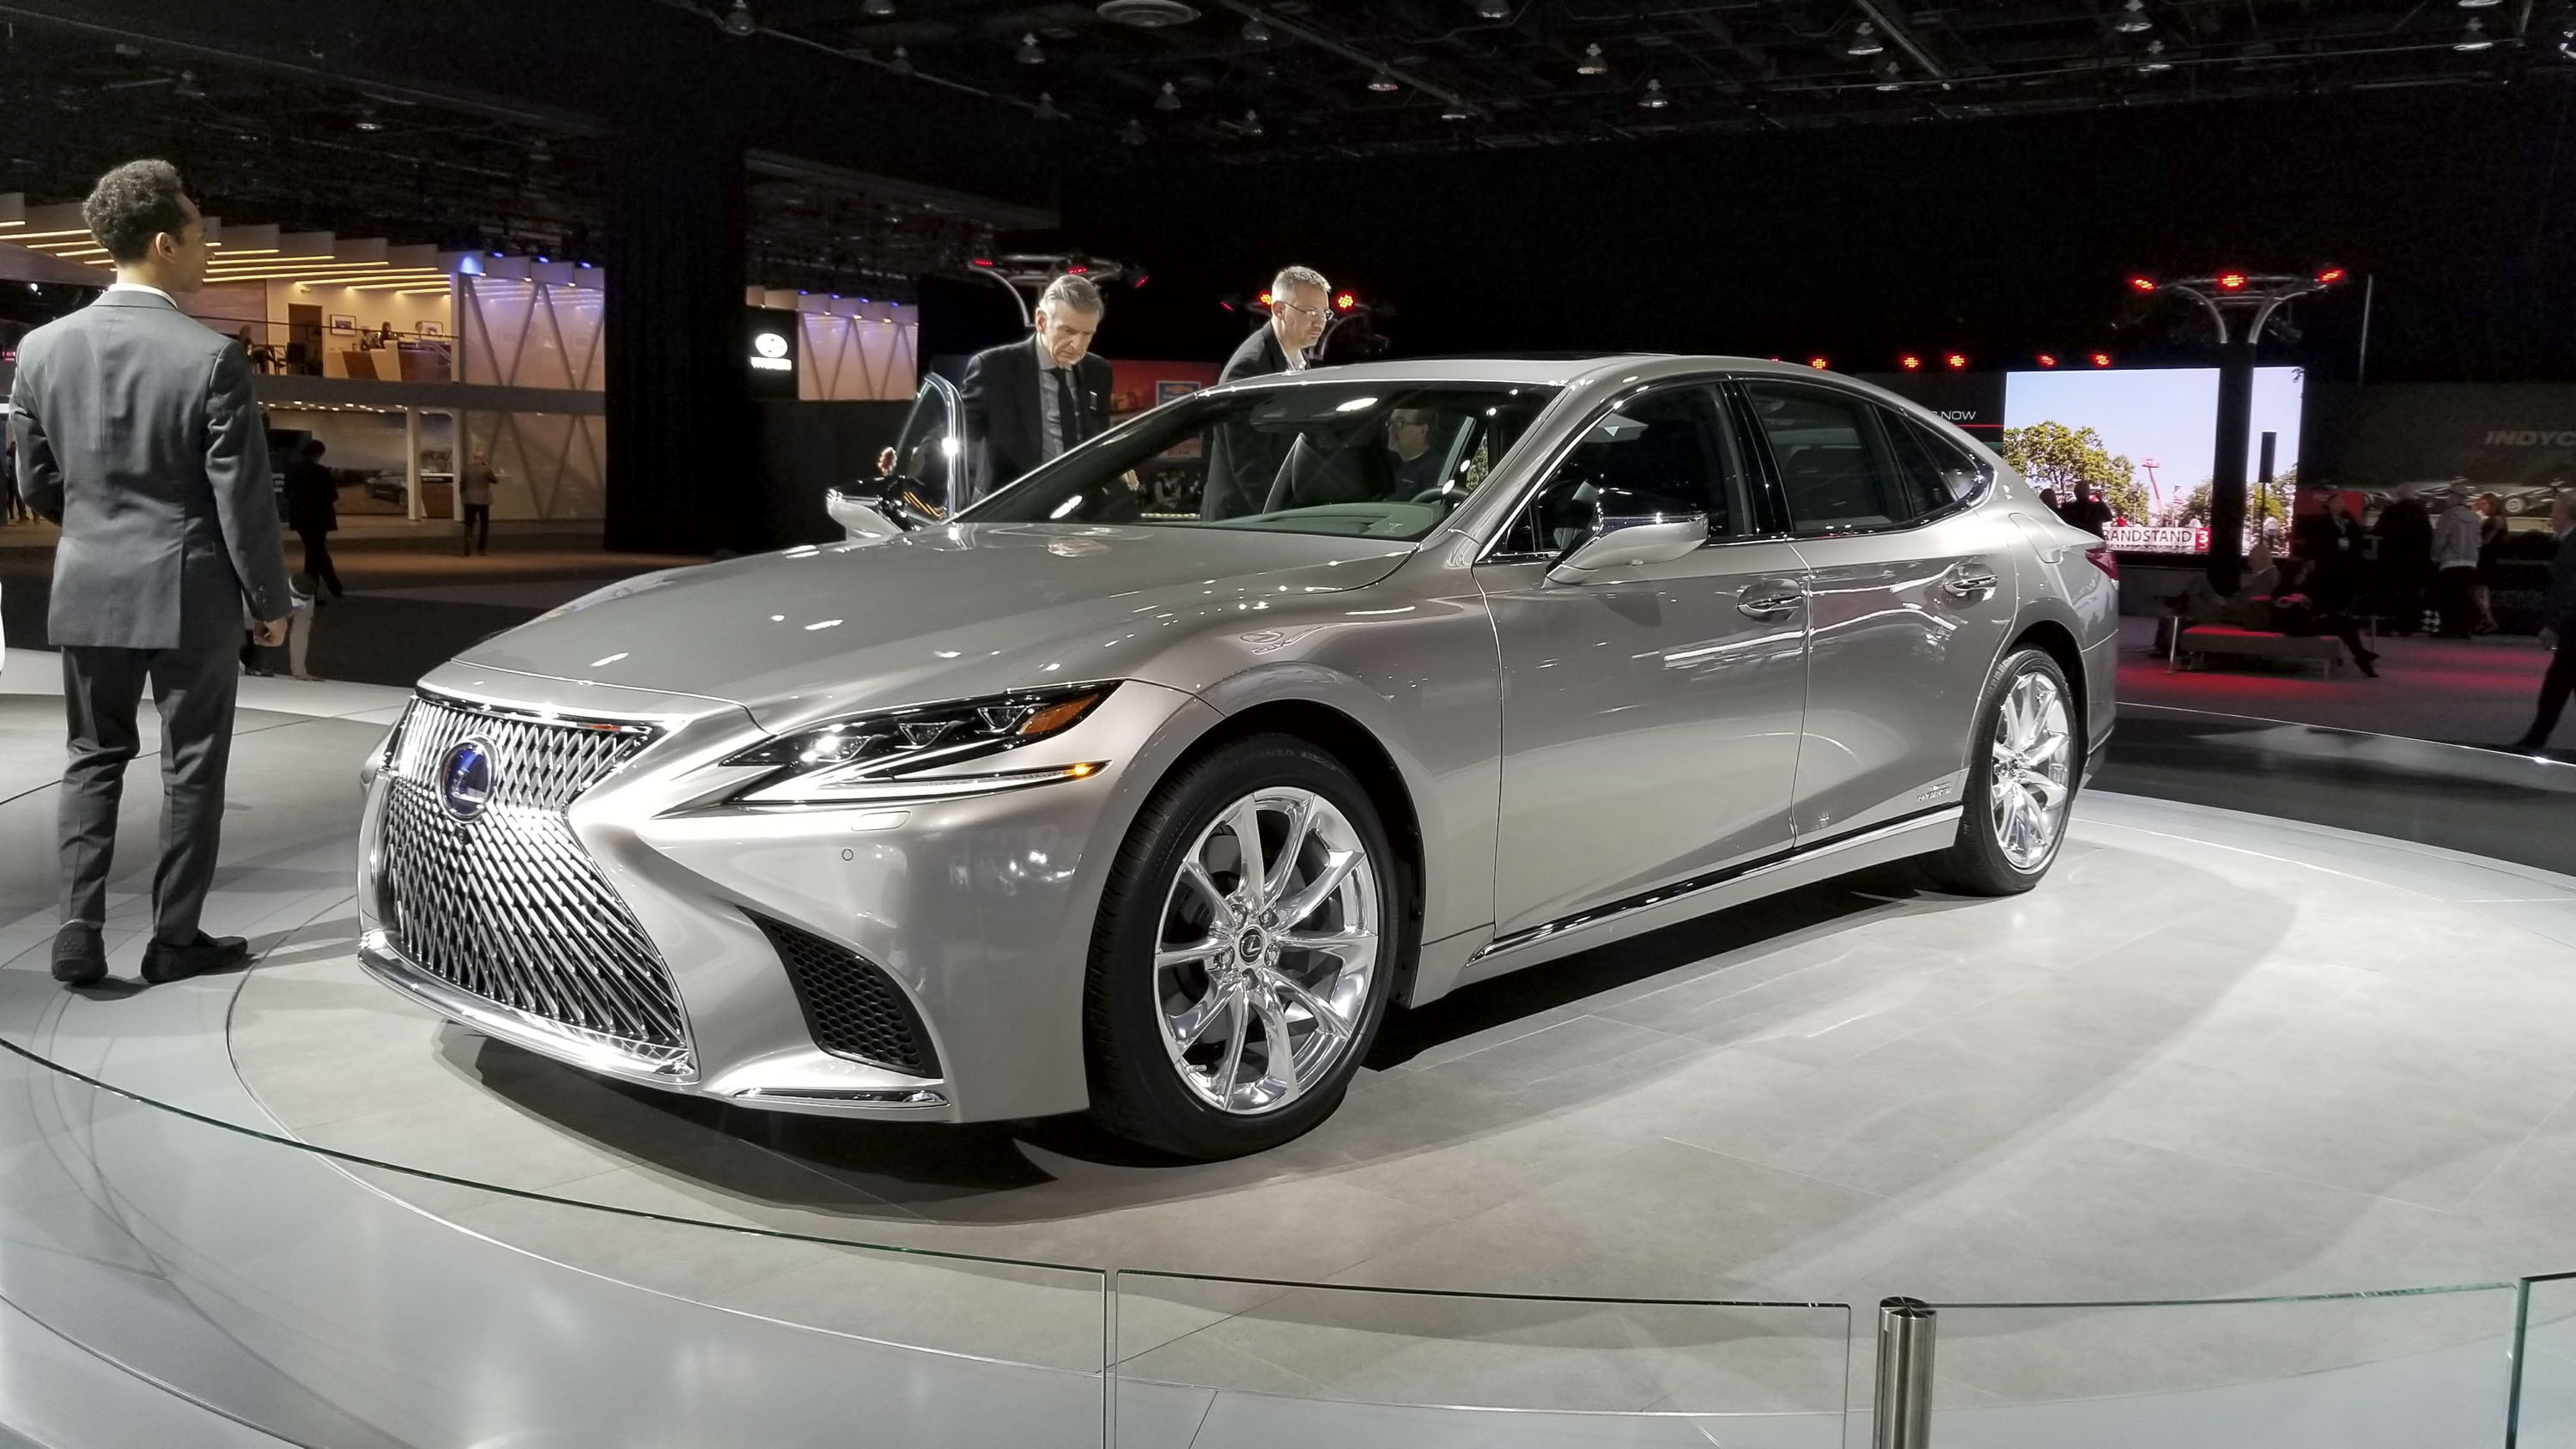 2018 lexus ls pricing unveiled in detroit significantly more affordable than mercedes s class. Black Bedroom Furniture Sets. Home Design Ideas